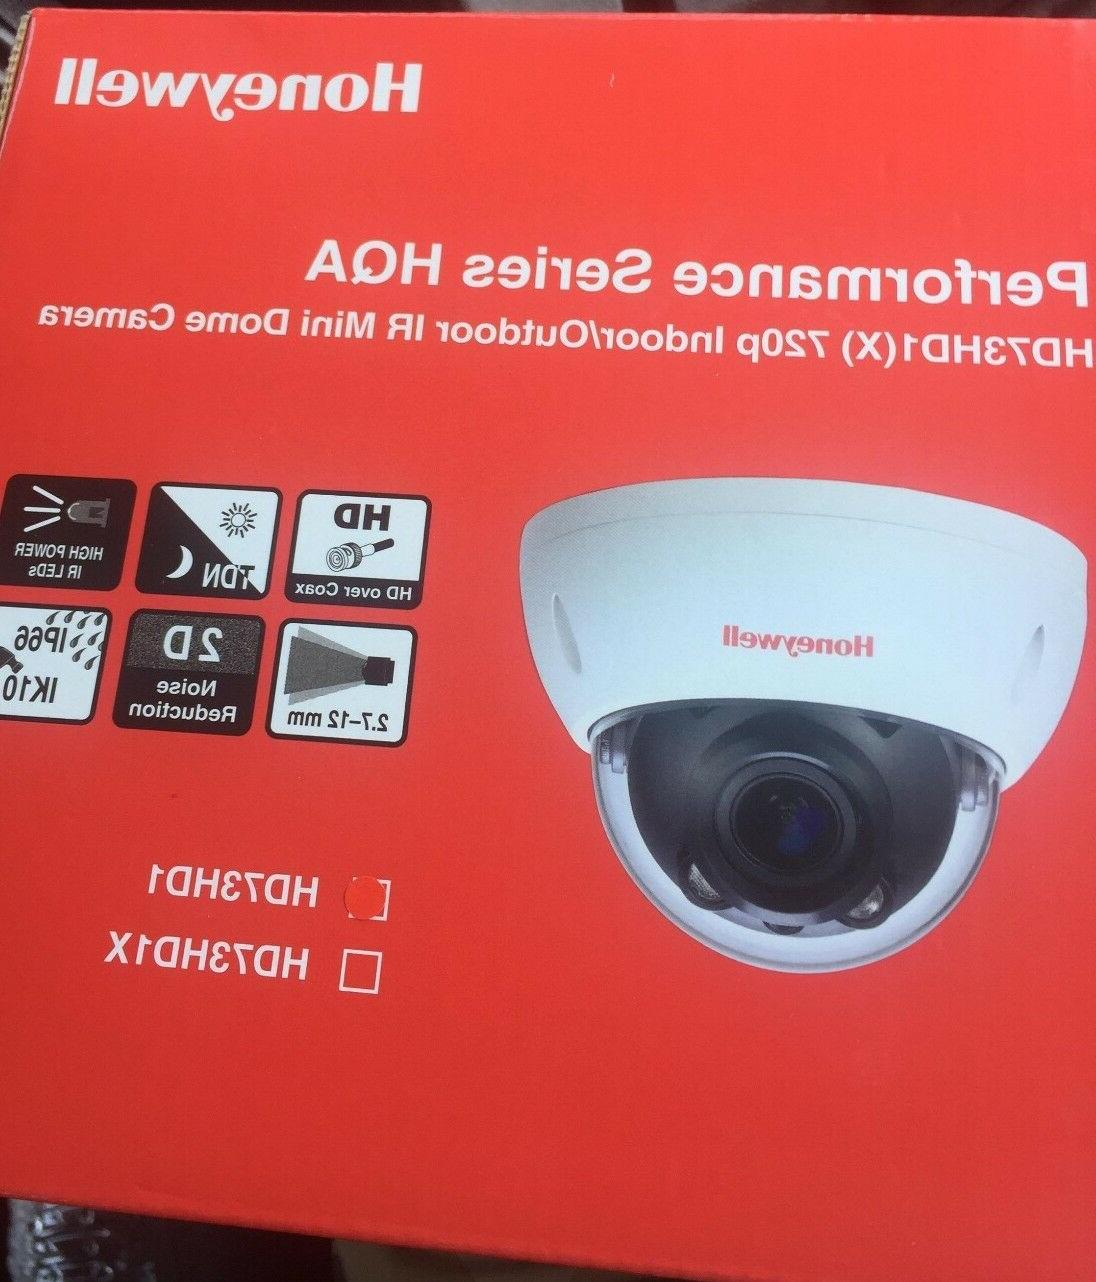 honeywell security camera performance series HQA indoor/outd